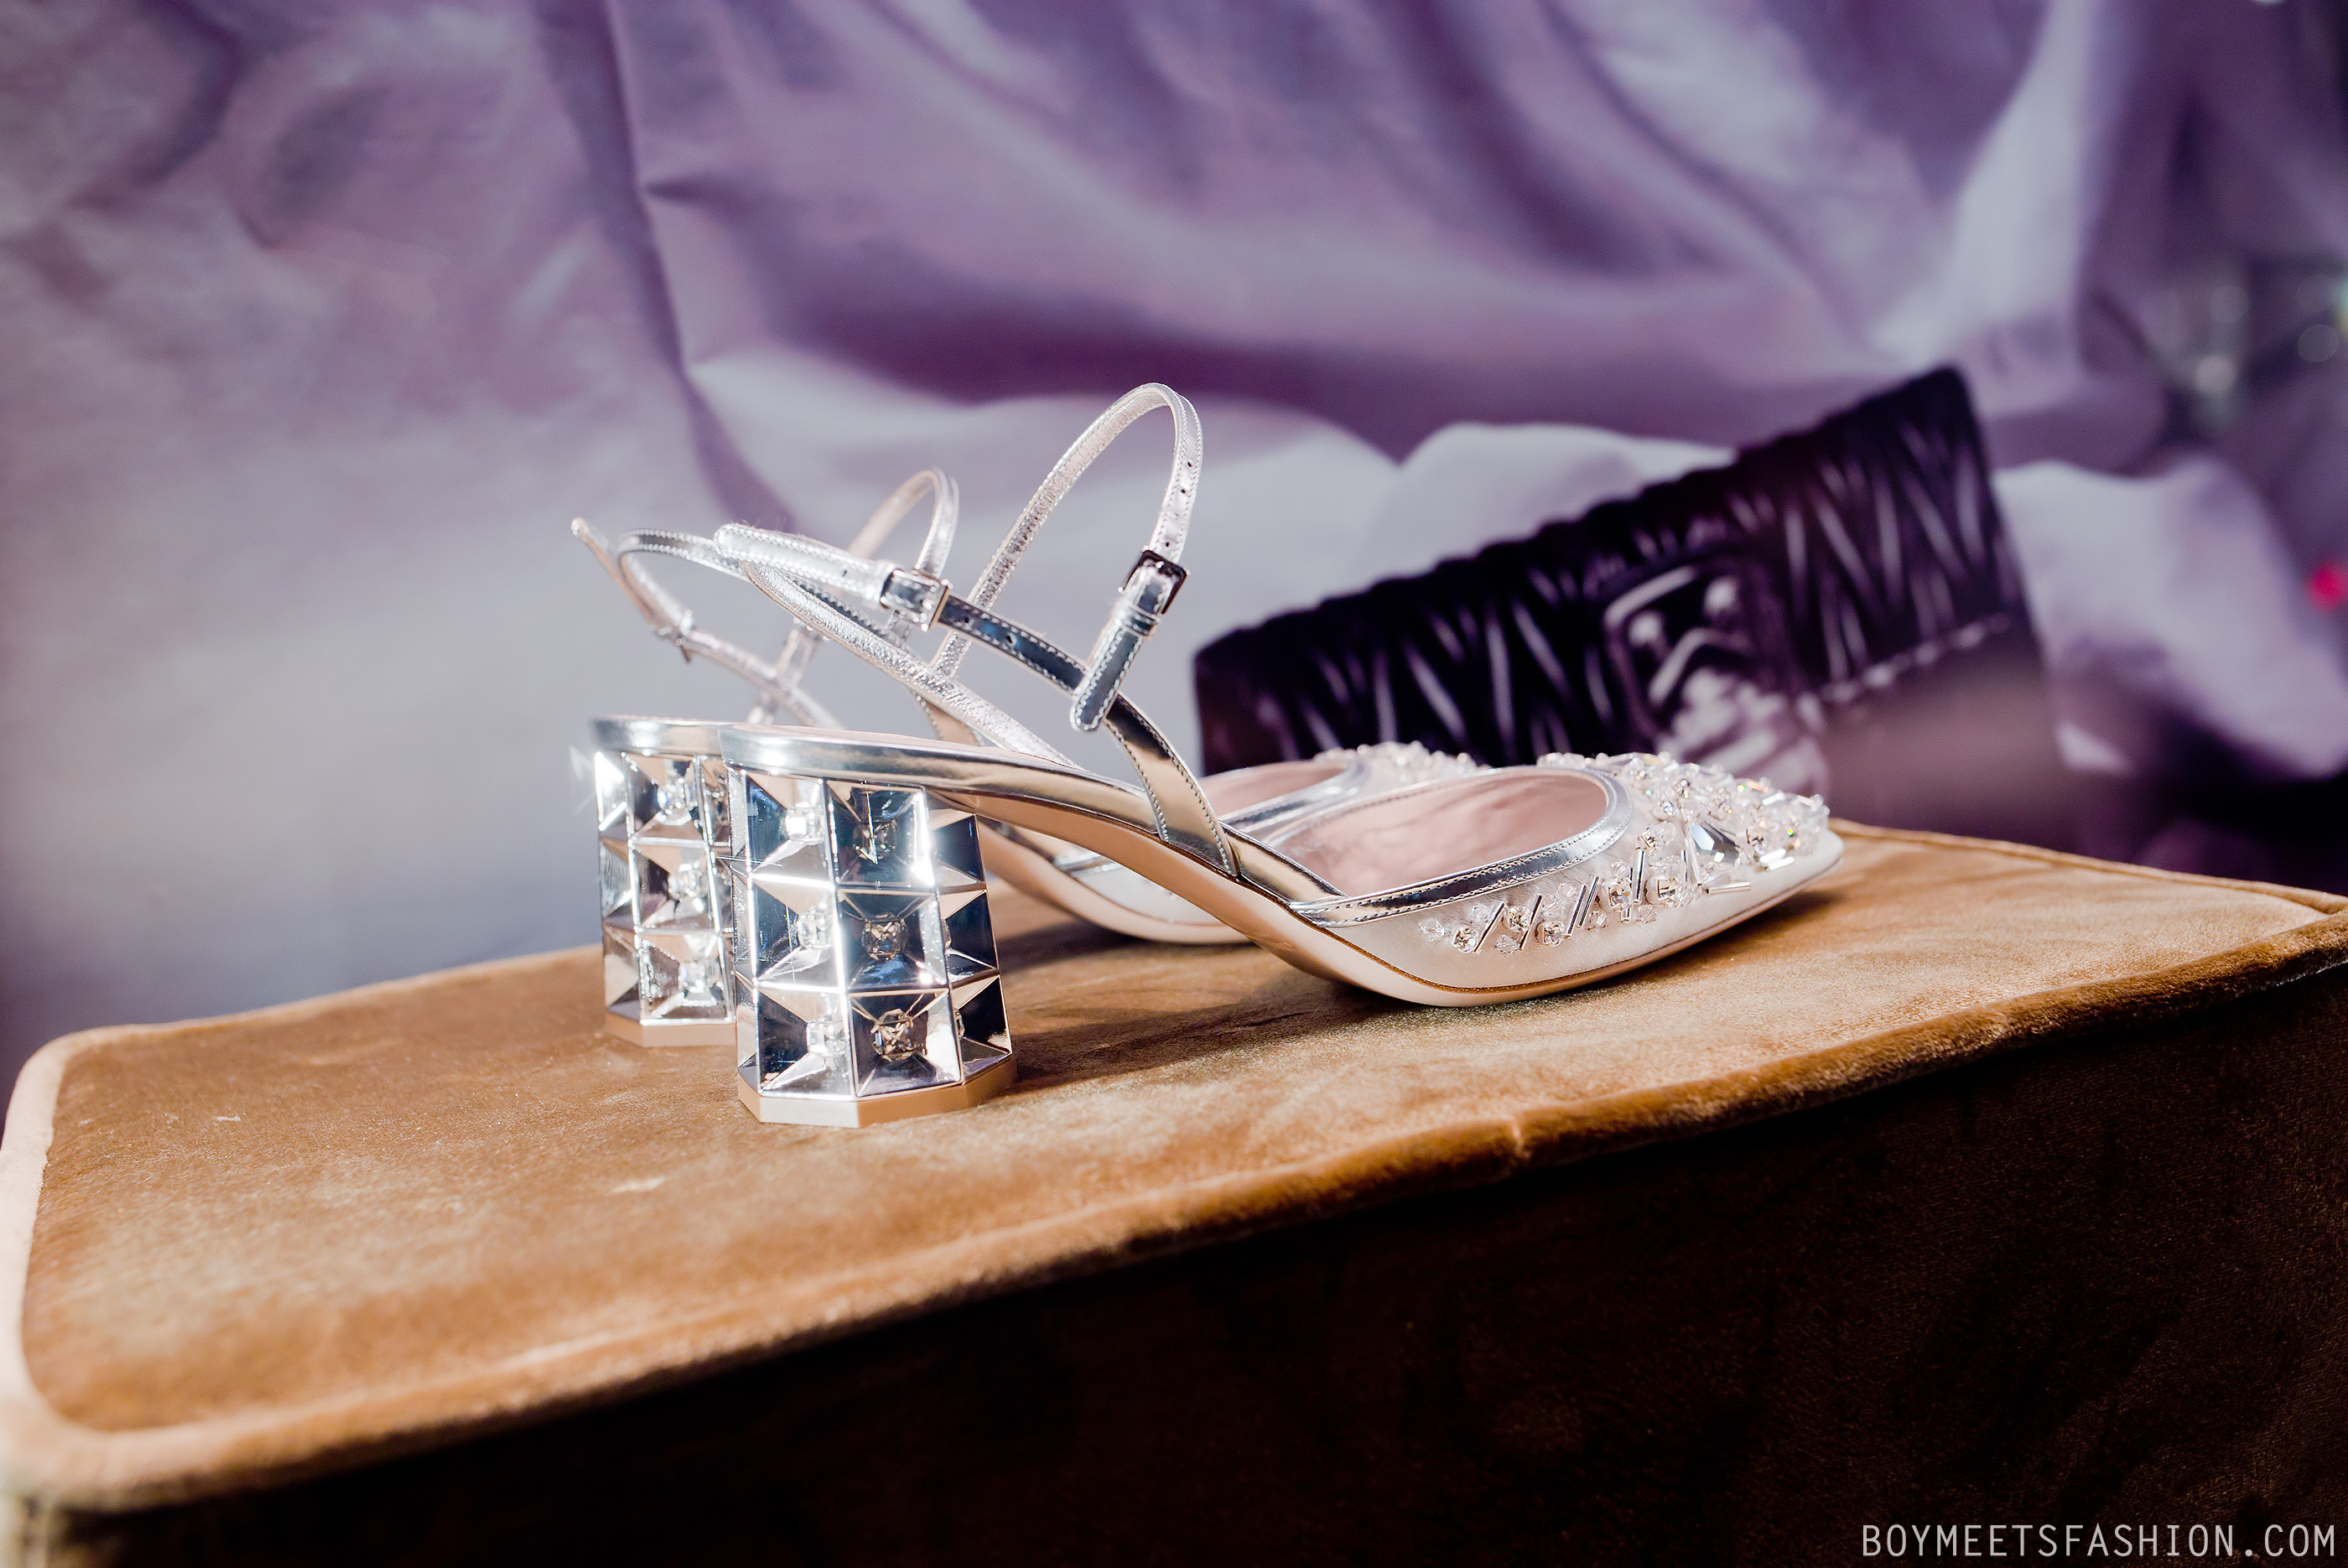 0a39d78c4d2a These pointy toe lamé satin shoes are embellished with Swarovski crystals  and caught my eyes as I walked past the Miu Miu shop late at night.